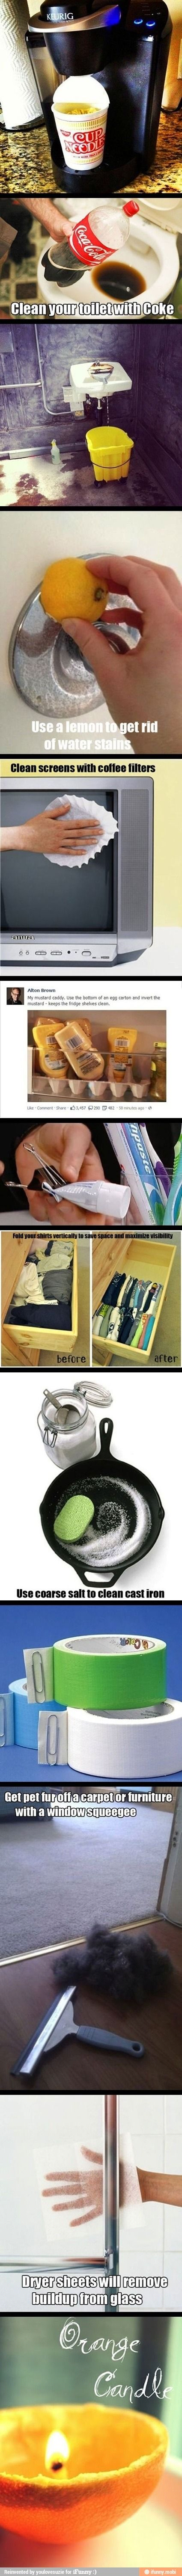 Useful life hacks; Youre Welcome!